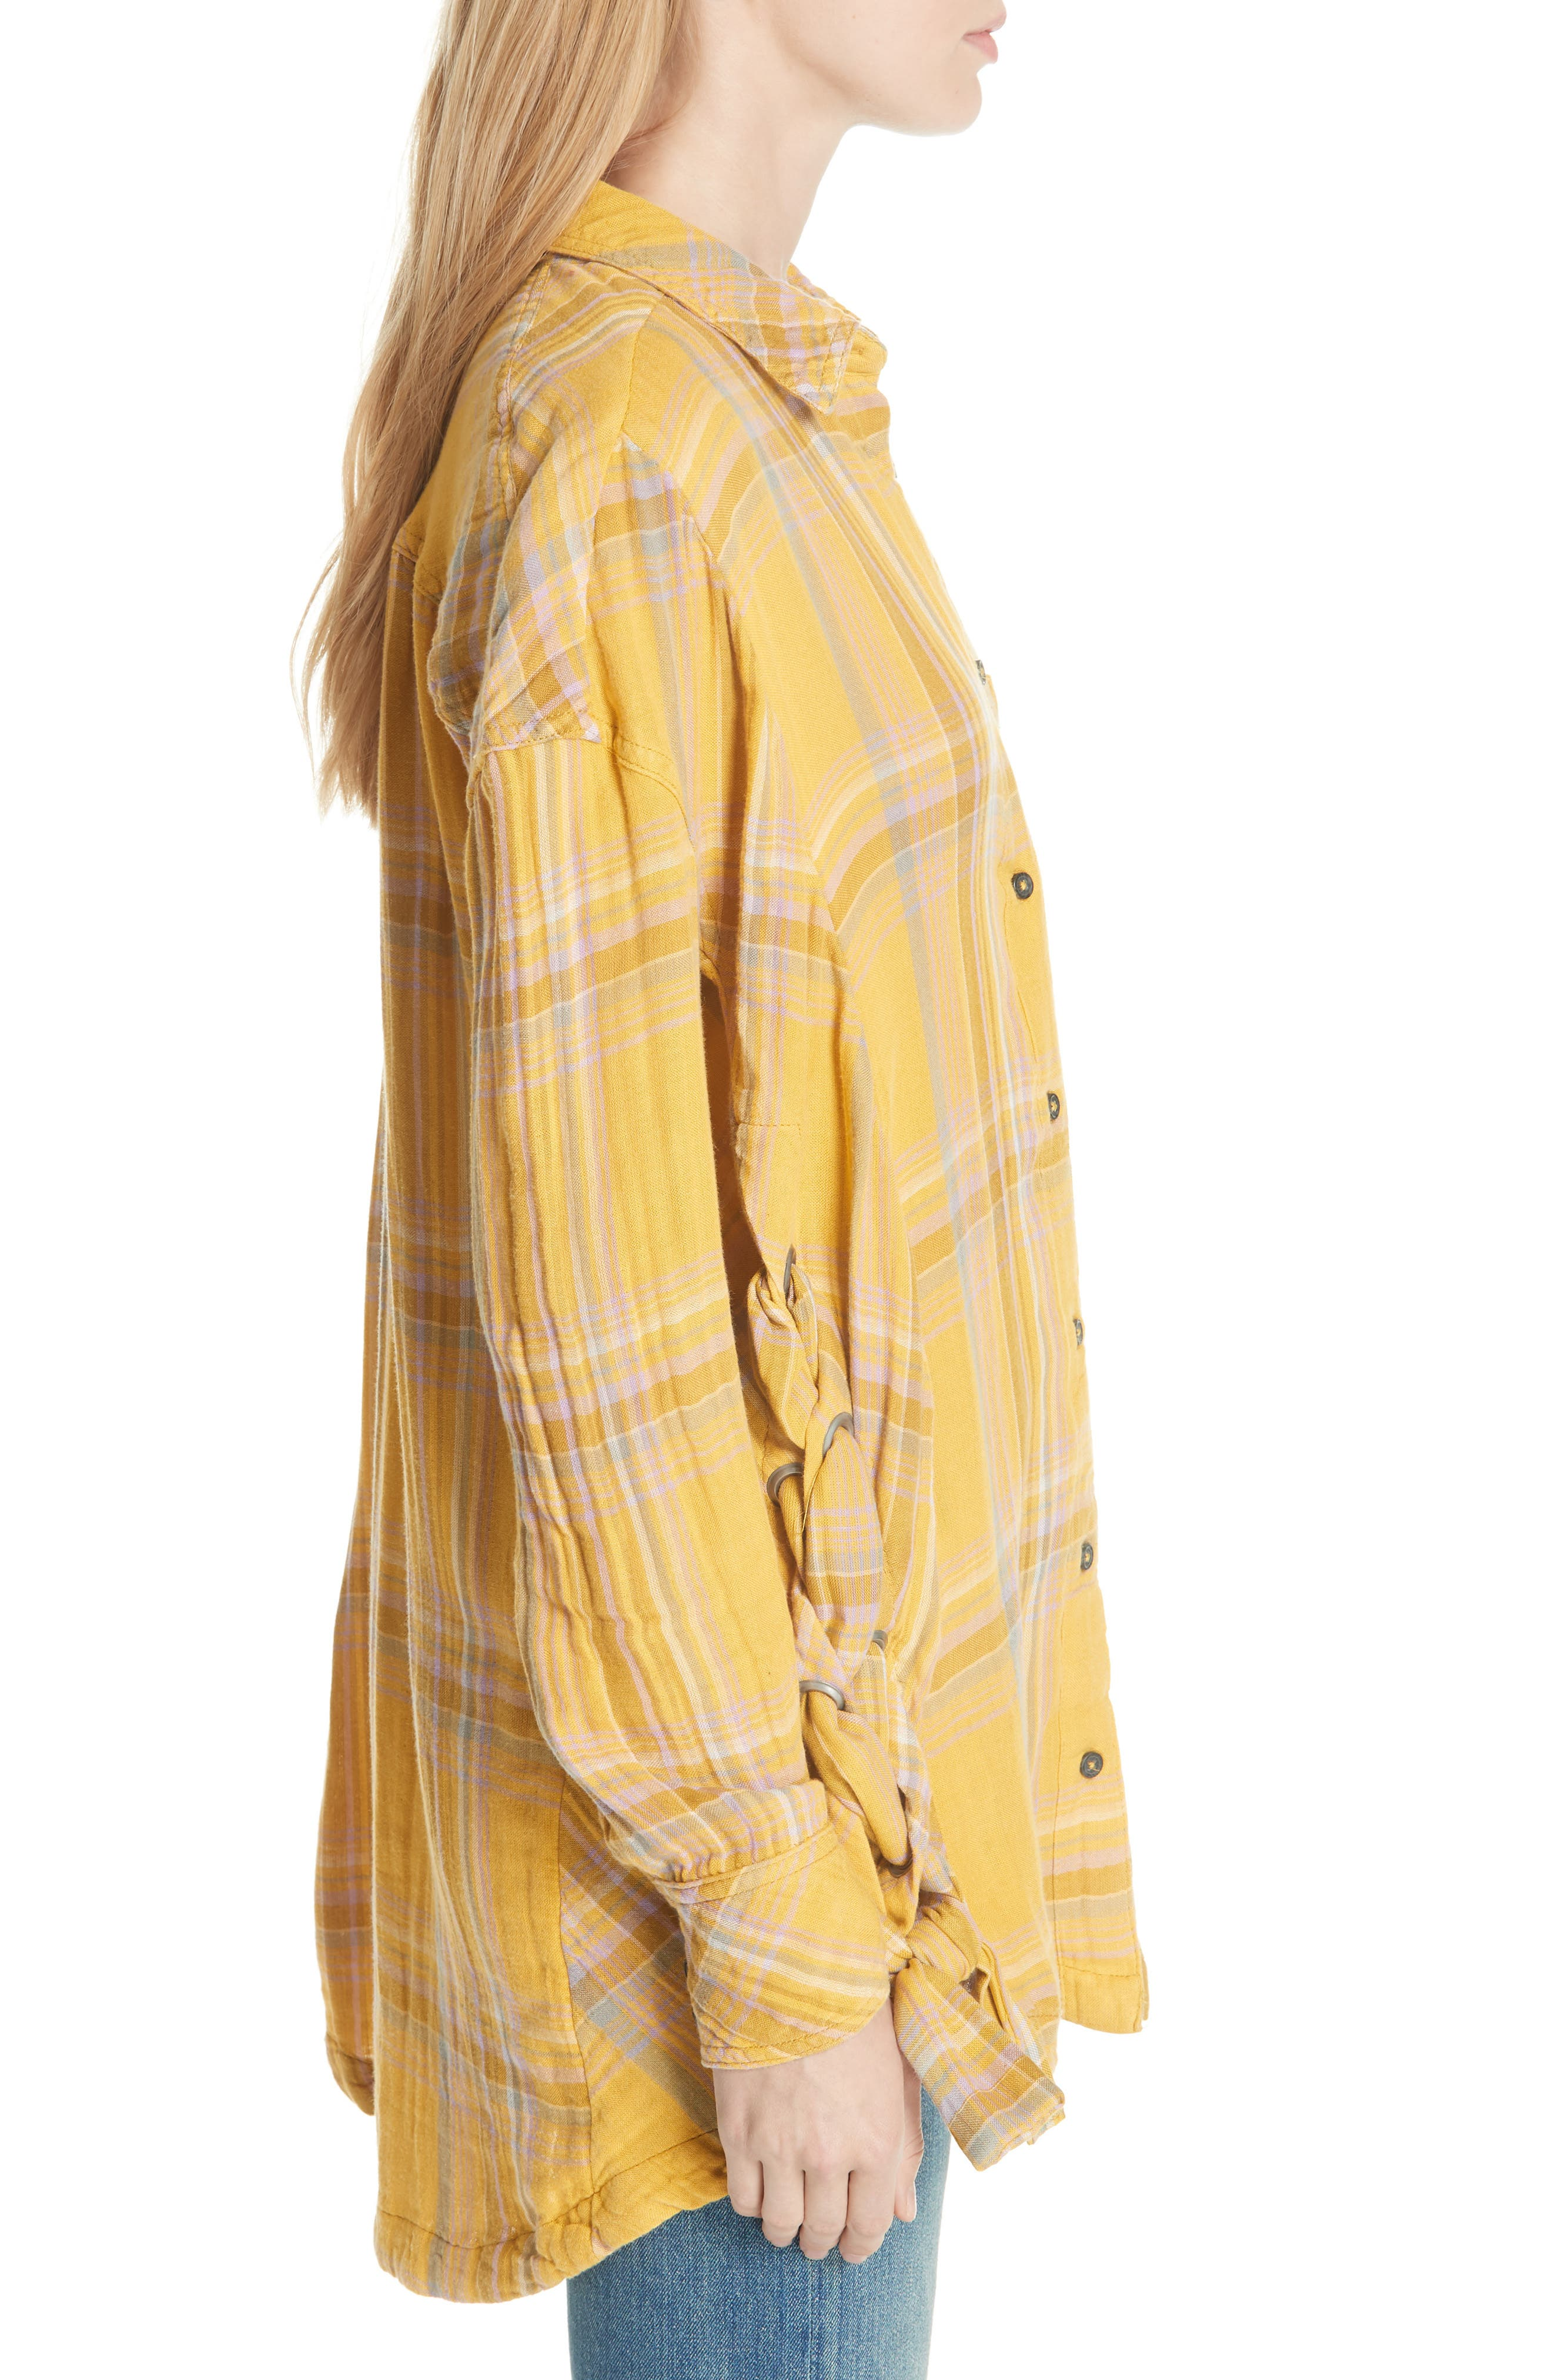 Nordic Day Top,                             Alternate thumbnail 3, color,                             Yellow